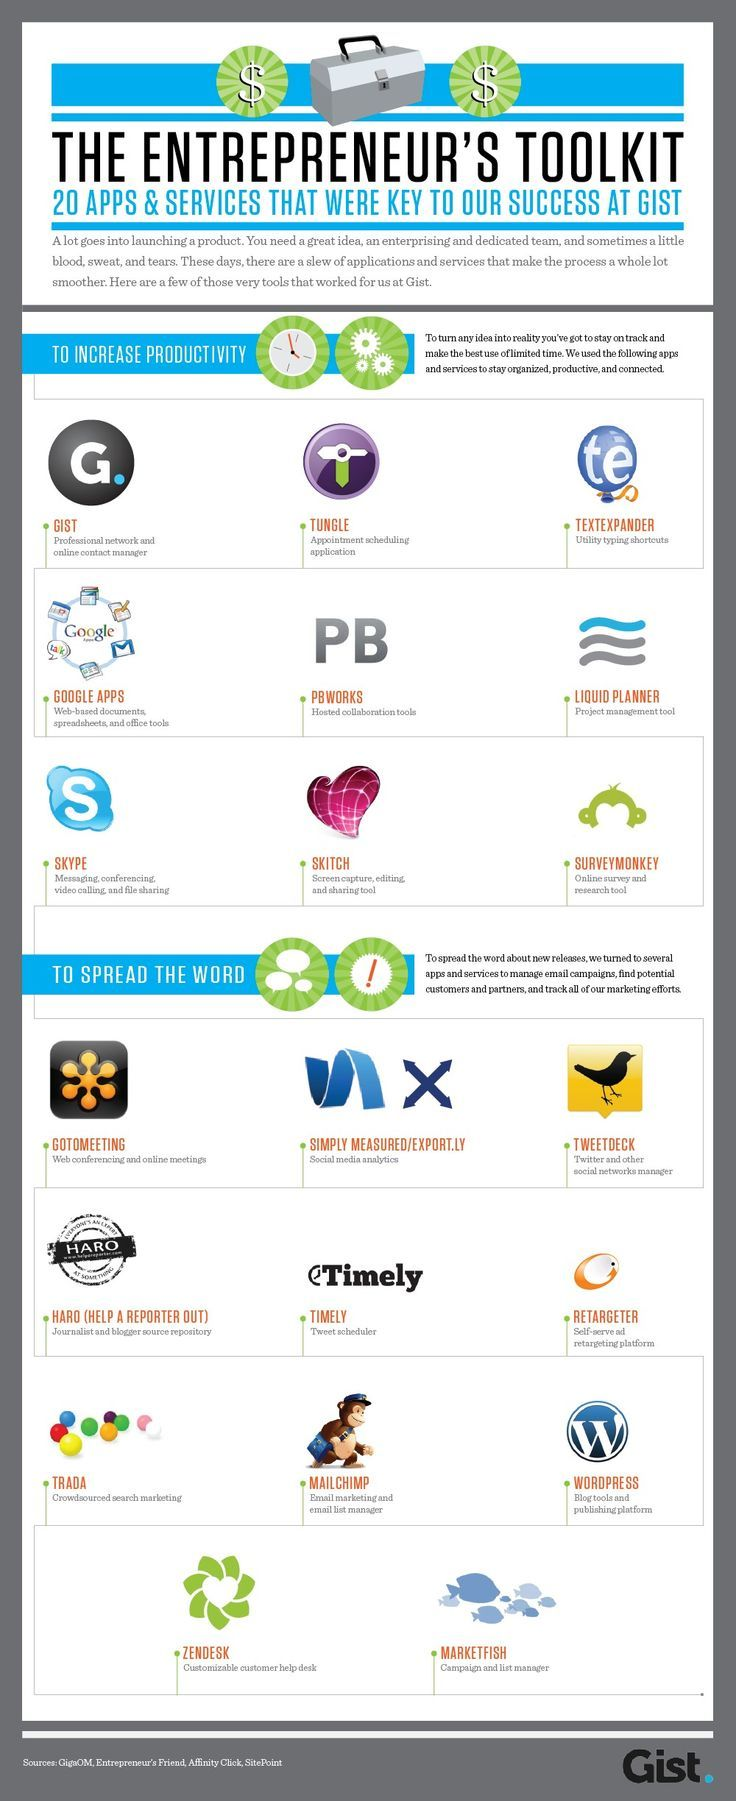 The Entrepreneur's Toolkit of APPS Help you start a small business from the group up. http://www.infographicsposters.com/business/the-entrepreneur-s-toolkit.html